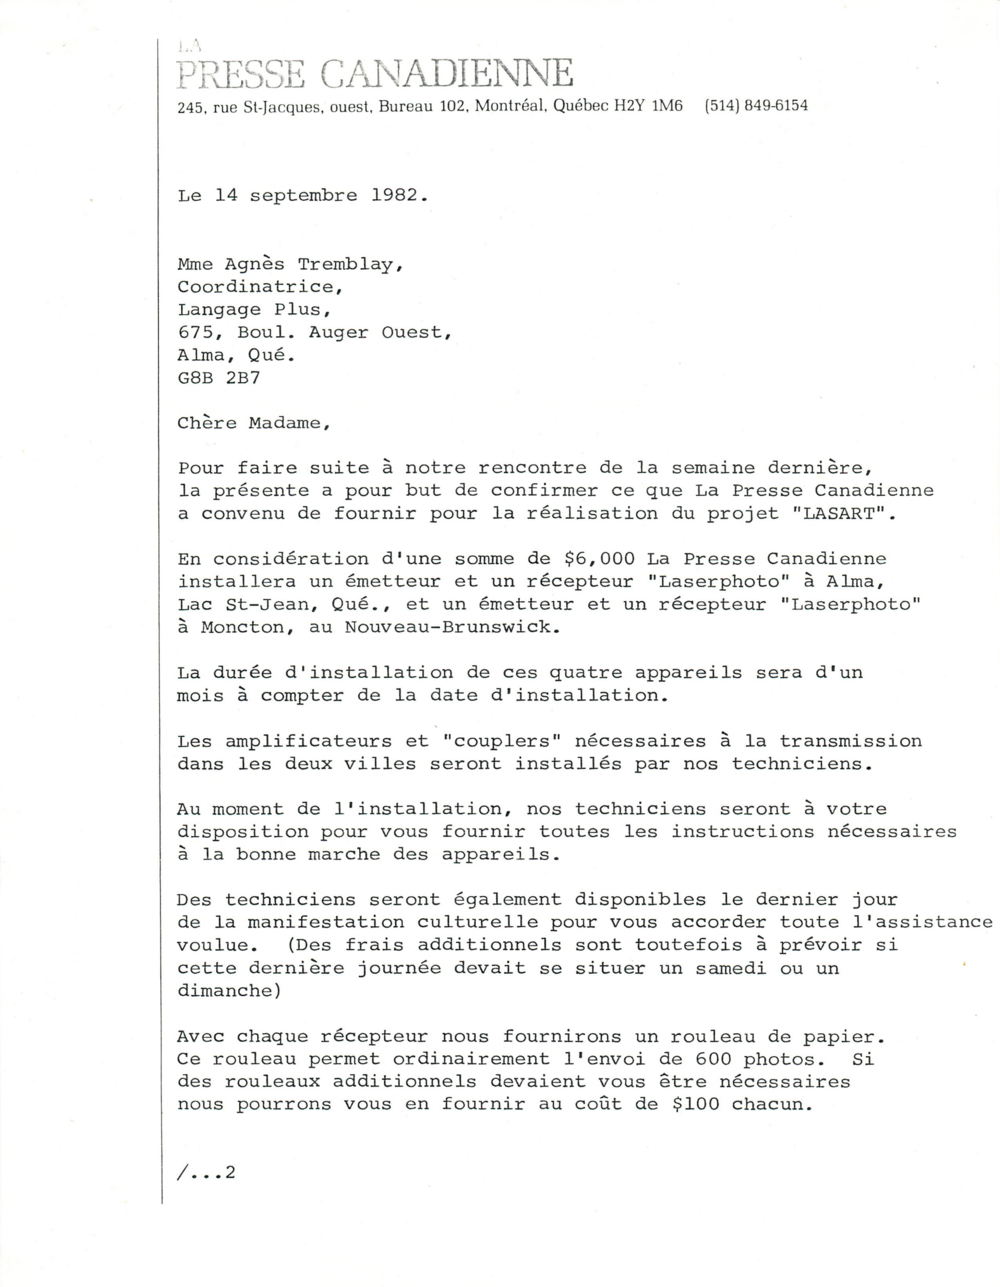 Document original : Lettre à Agnès Tremblay ( Langage Plus) de la part de La Presse Canadienne confirmant le prêt des machines. 1/2